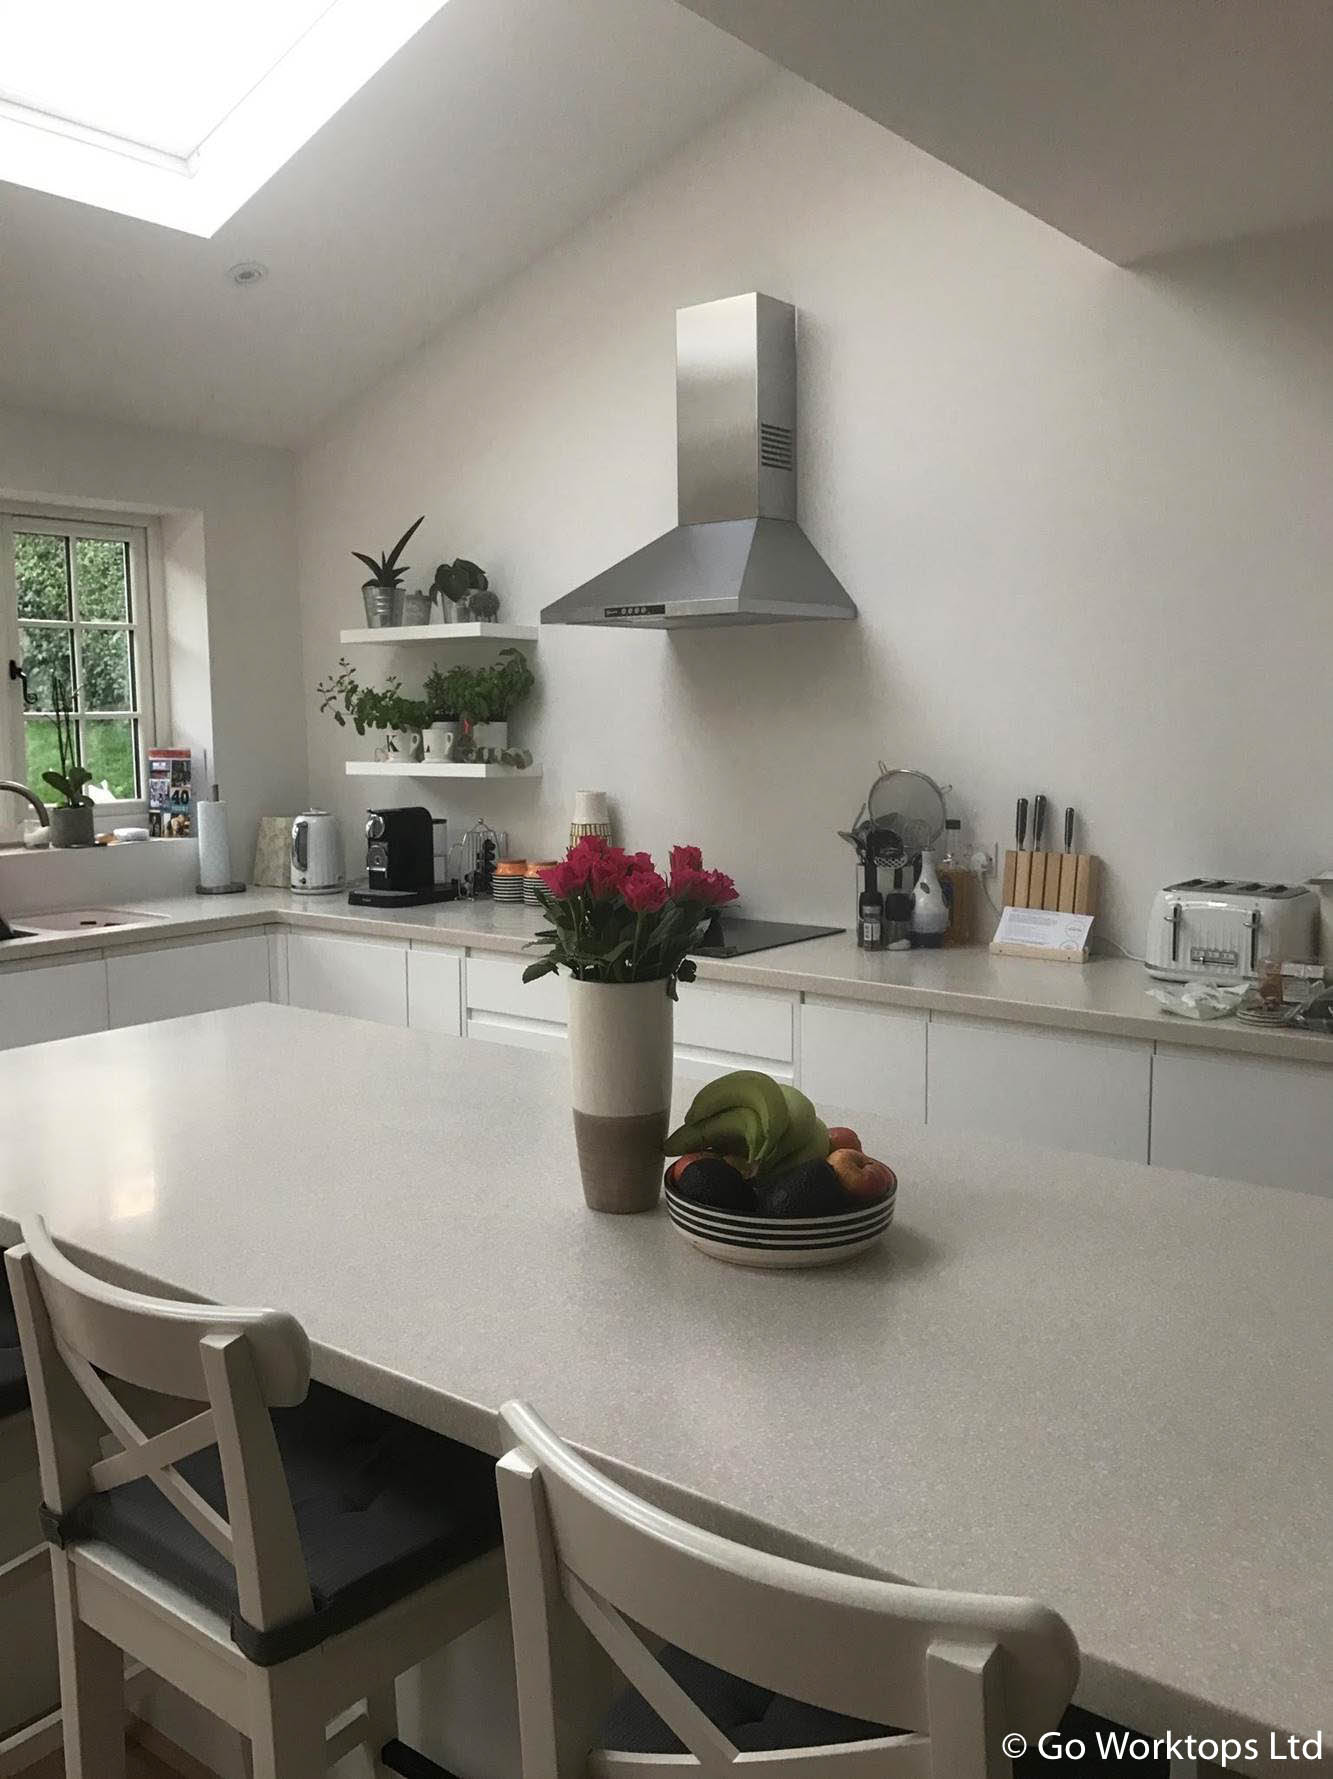 Fabricated by Go Worktops